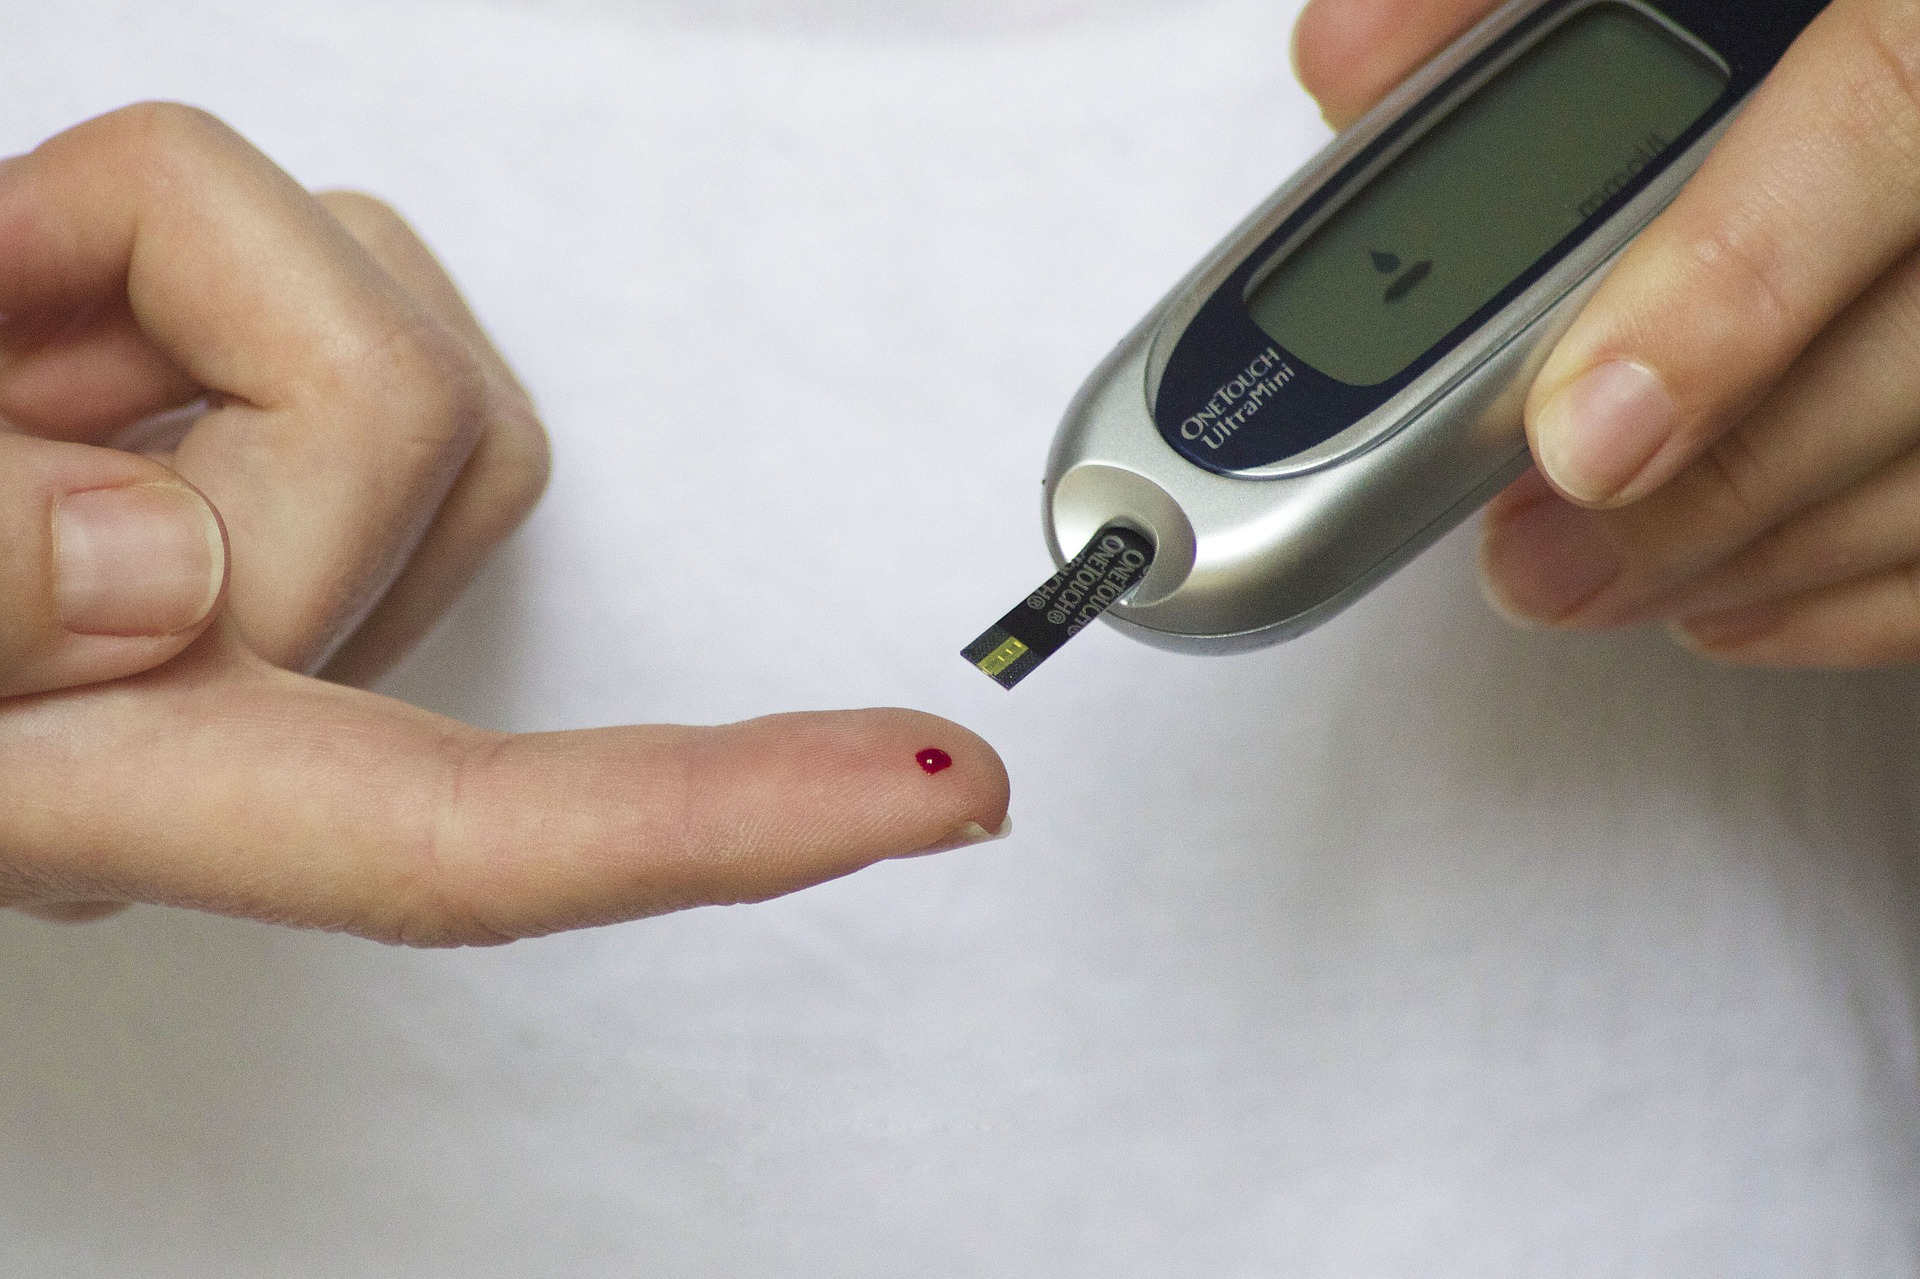 diabetes 777002 1920 - Diabetes Podiatry